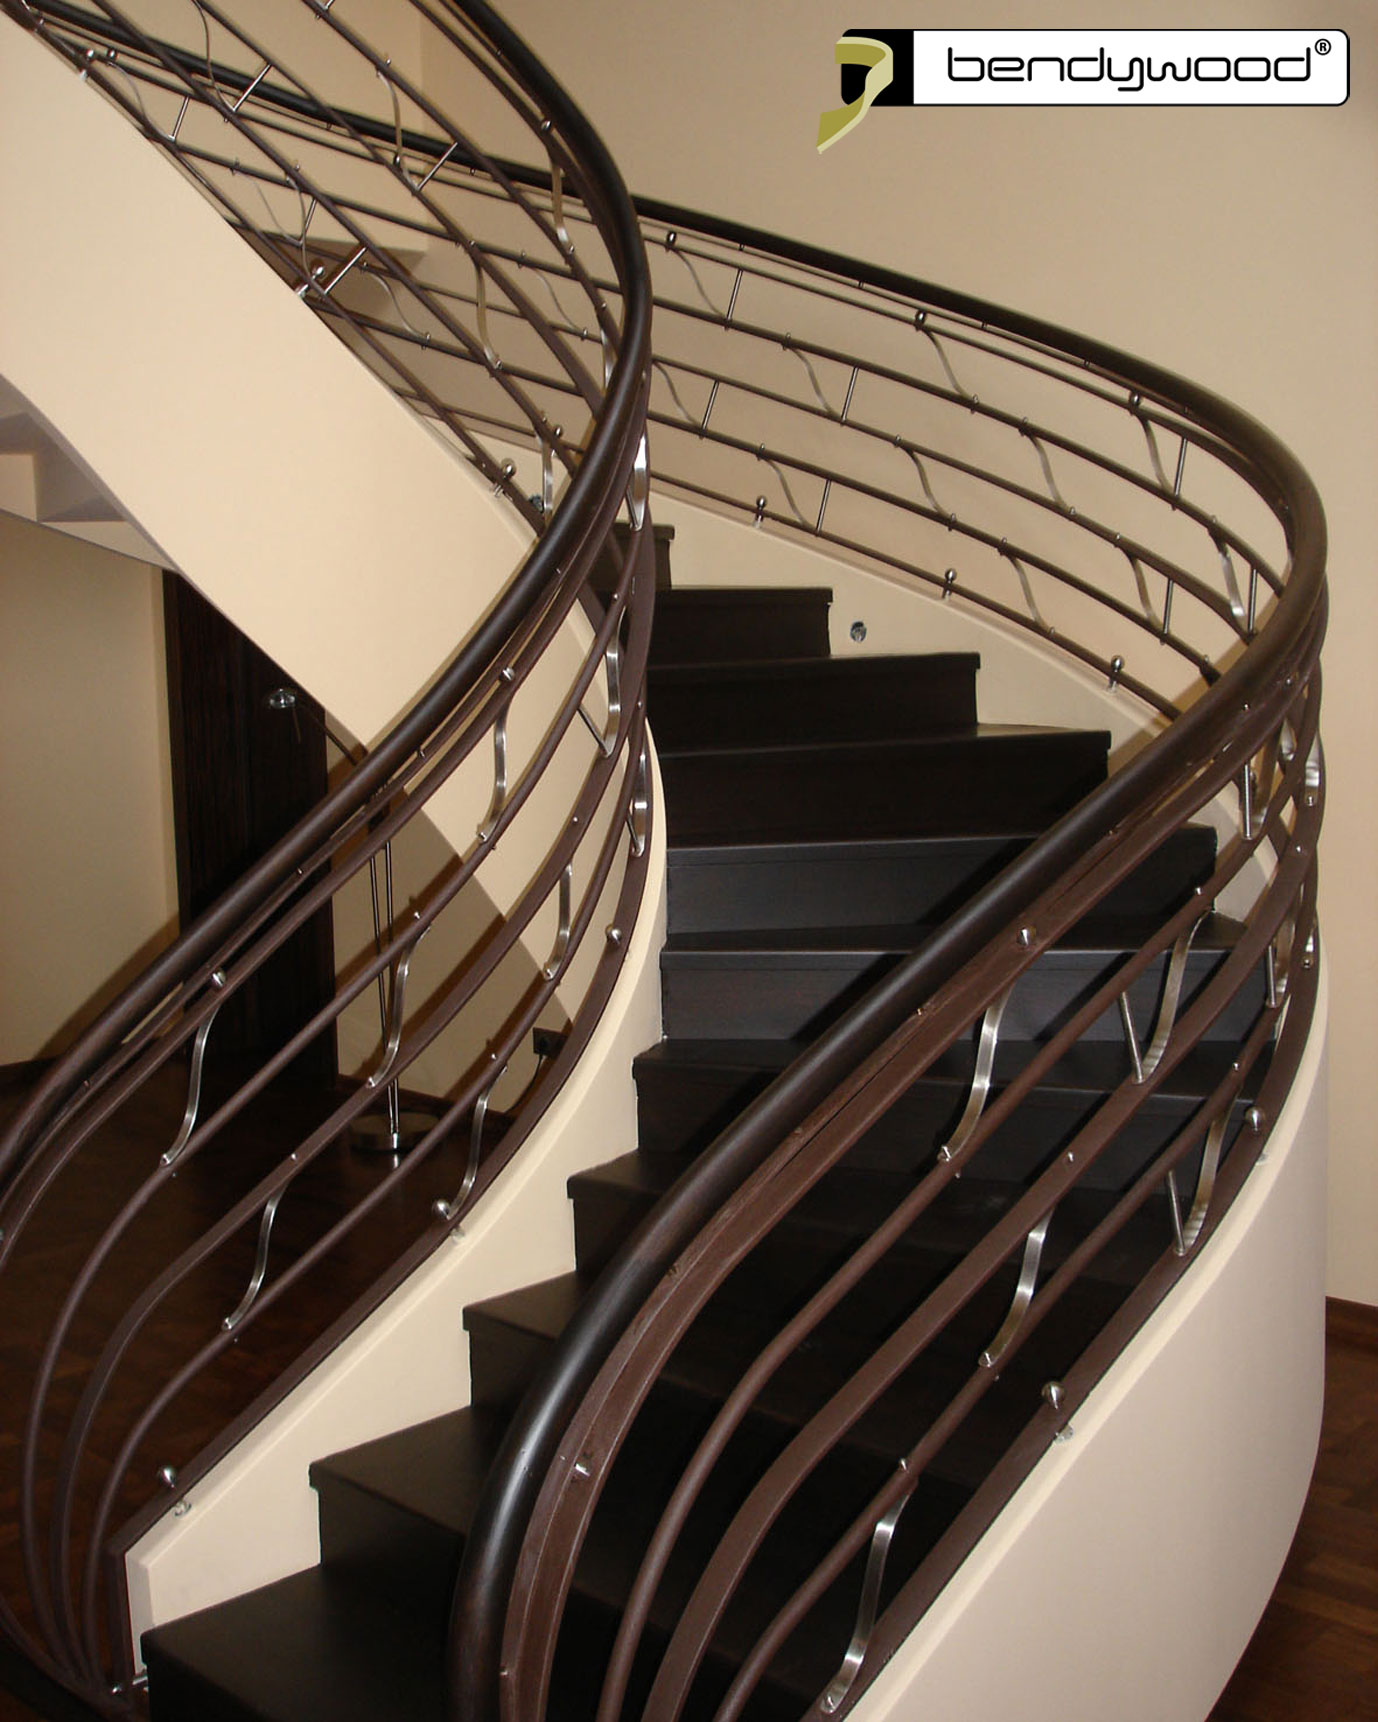 Bending stair handrails in Bendywood®-beech for staircase